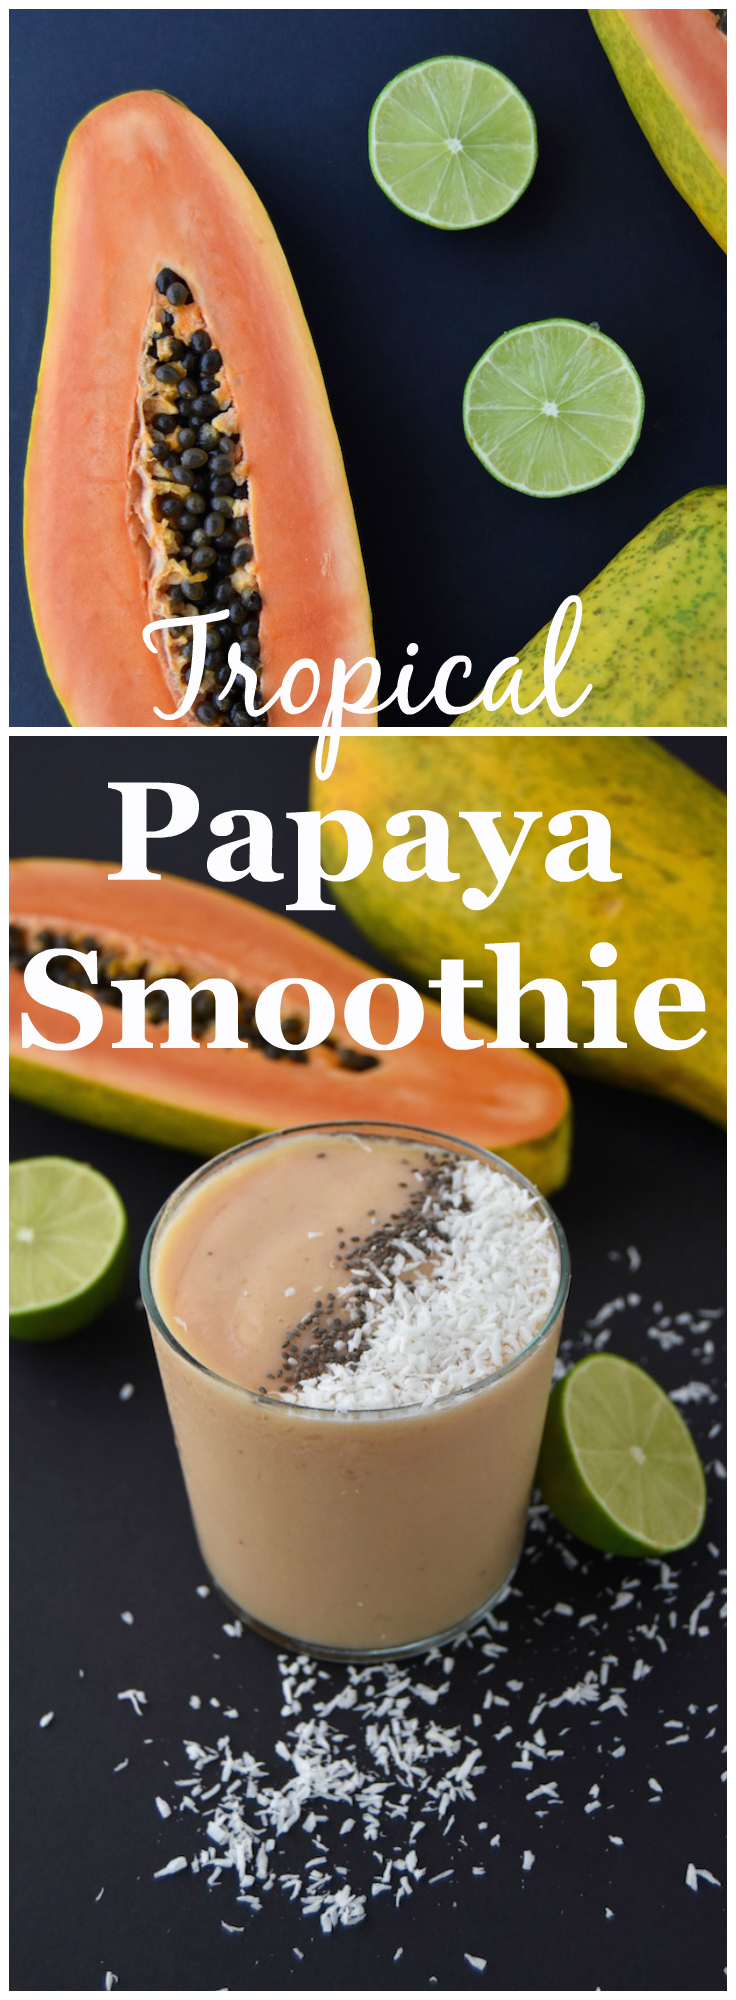 This Tropical Papaya Smoothie is a delicious and fresh summer sipper. | uprootkitchen.com